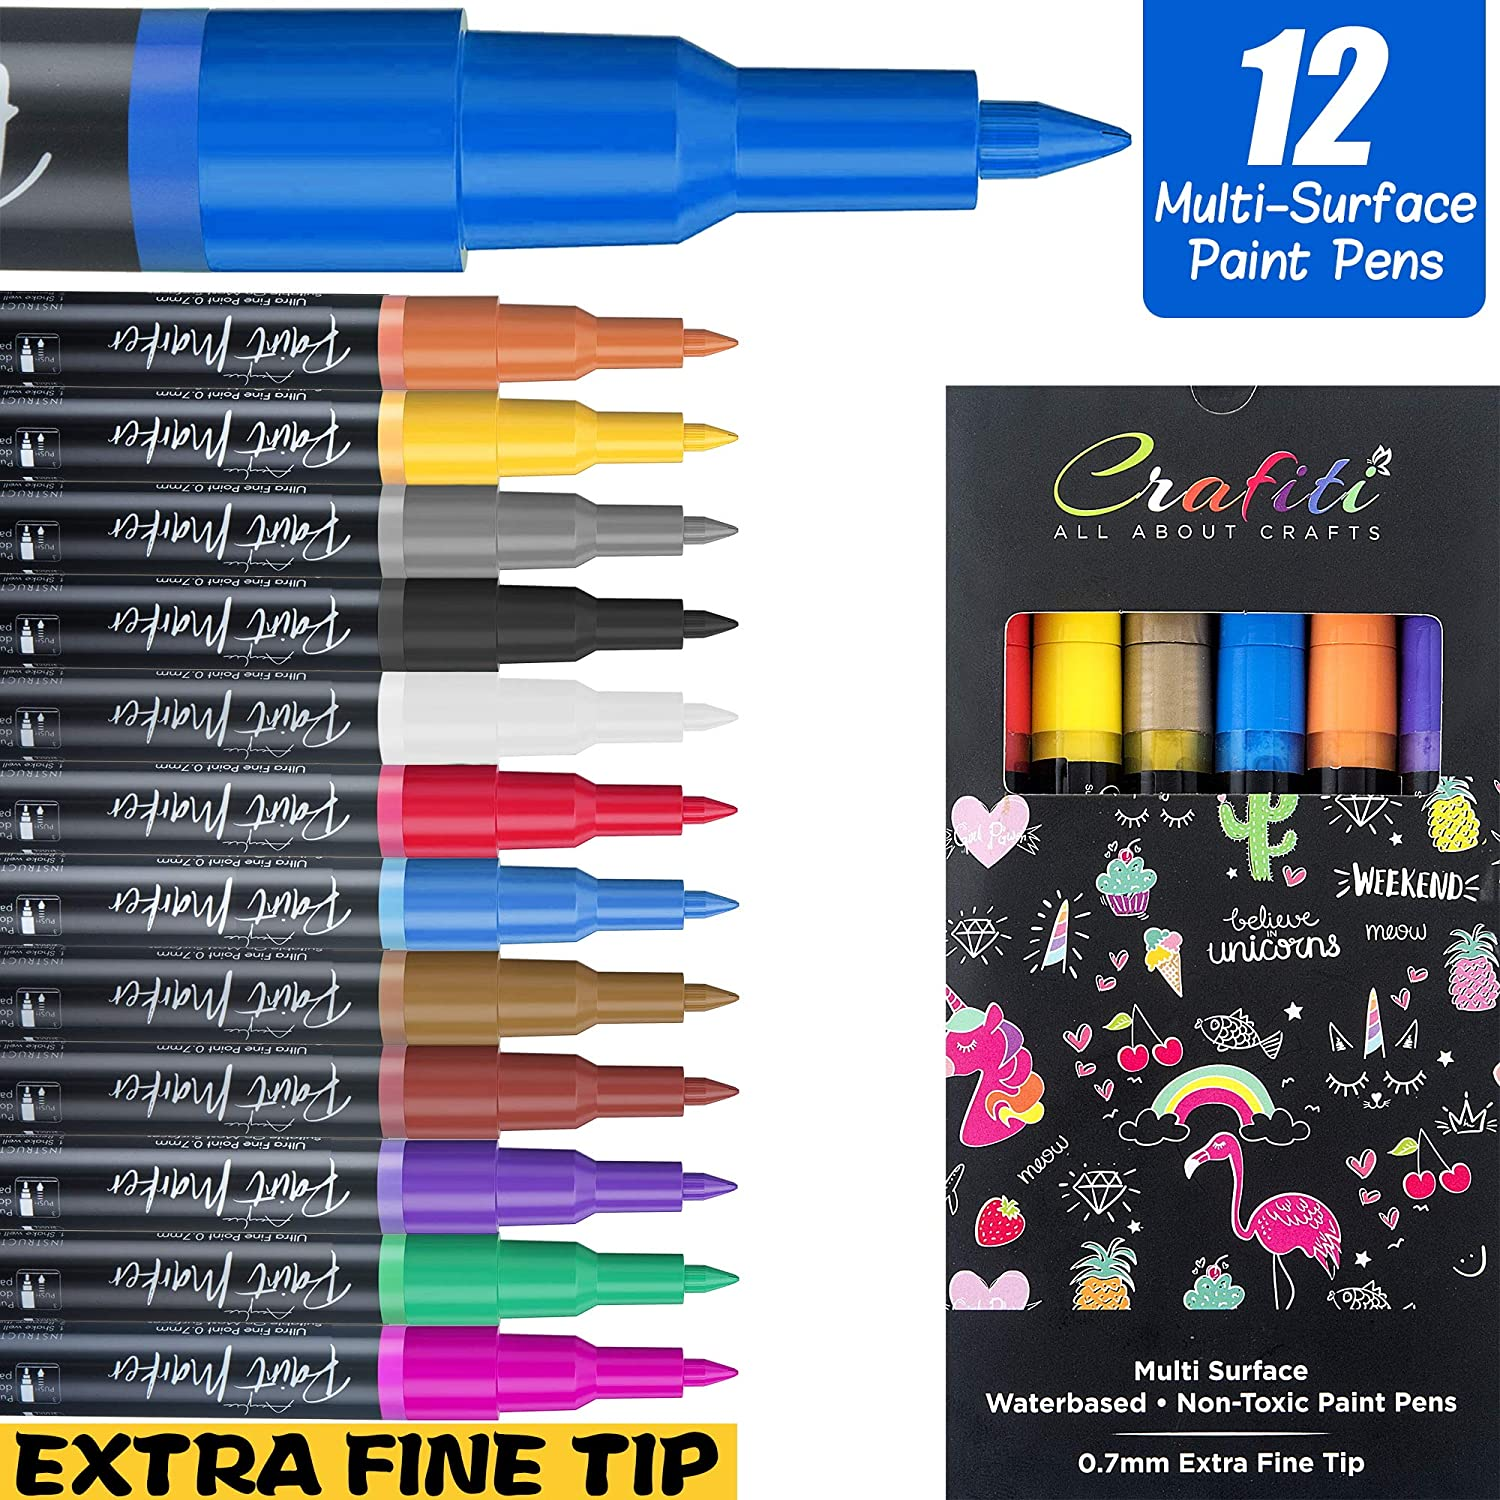 12 Paint Pens For All Surfaces - Rocks, Fabric, Metal & More. Ideal Paint Pens For Wood, Perfect Glass Paint Pens. Acrylic Paint Marker Pens Carefully Crafted & Designed For Your Next Artwork.